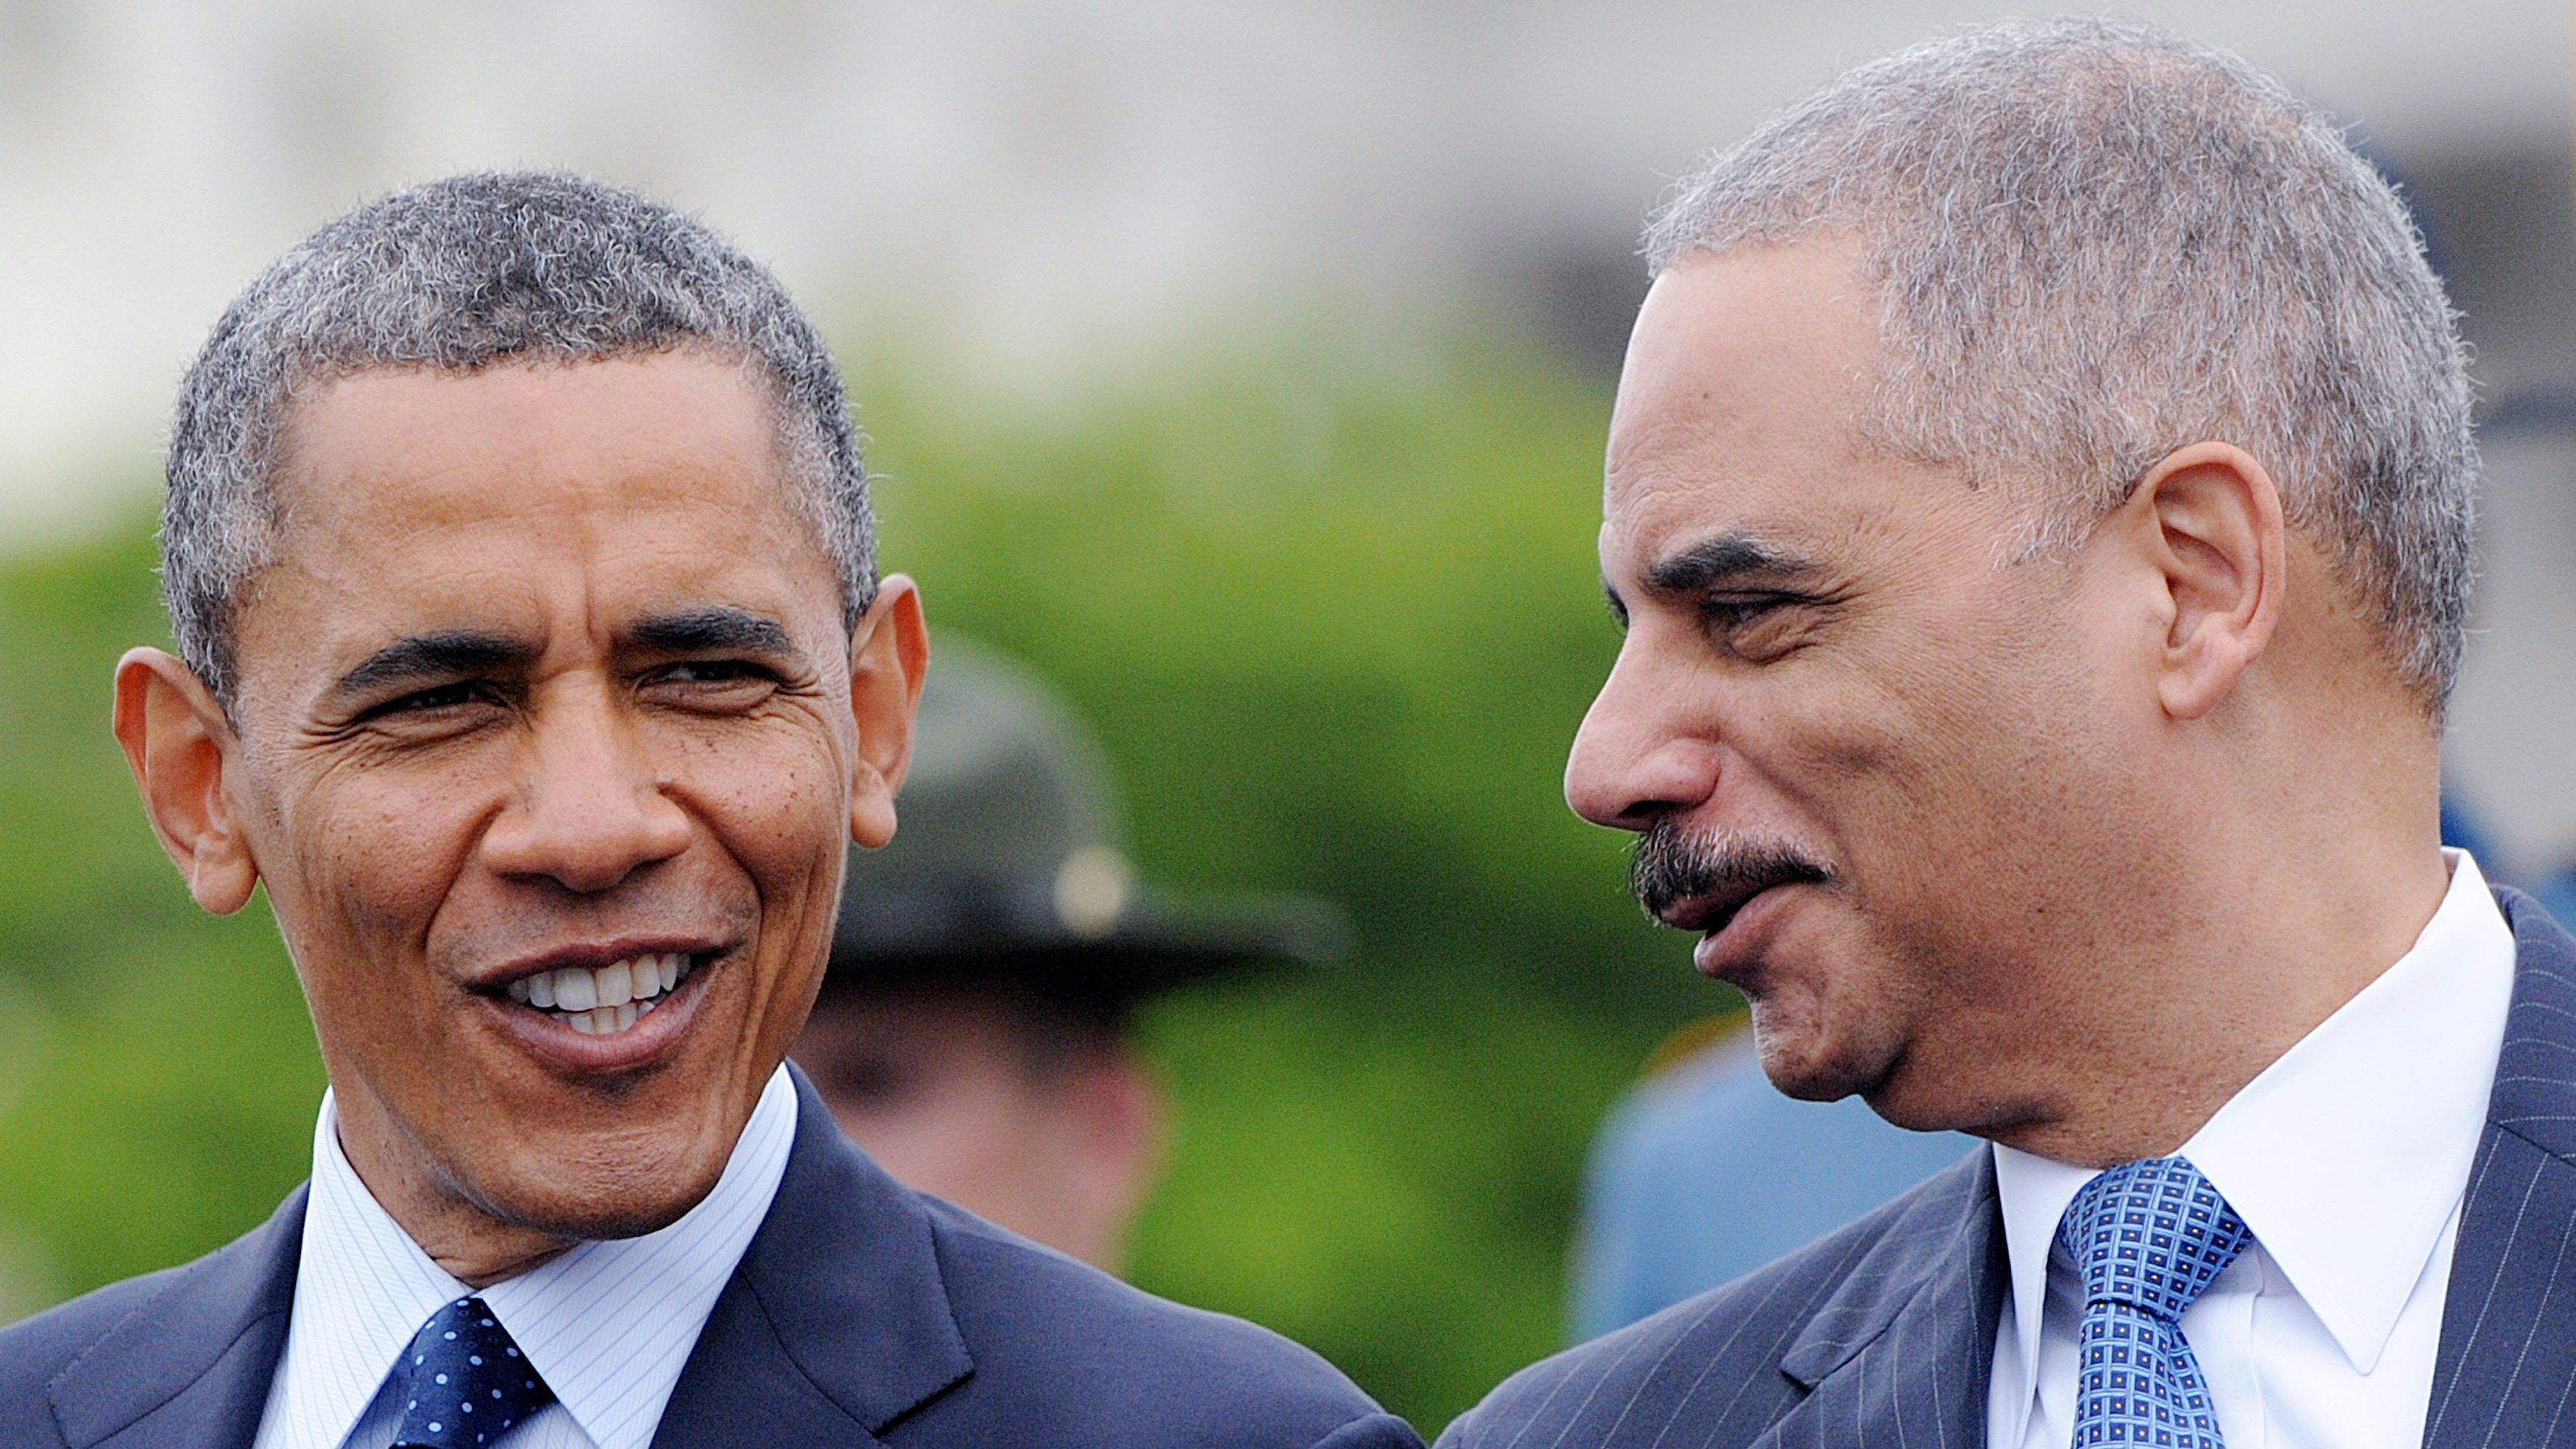 DOJ Gives Trey Gowdy The Tools To Hold Obama Holder Accountable For Fast And Furious